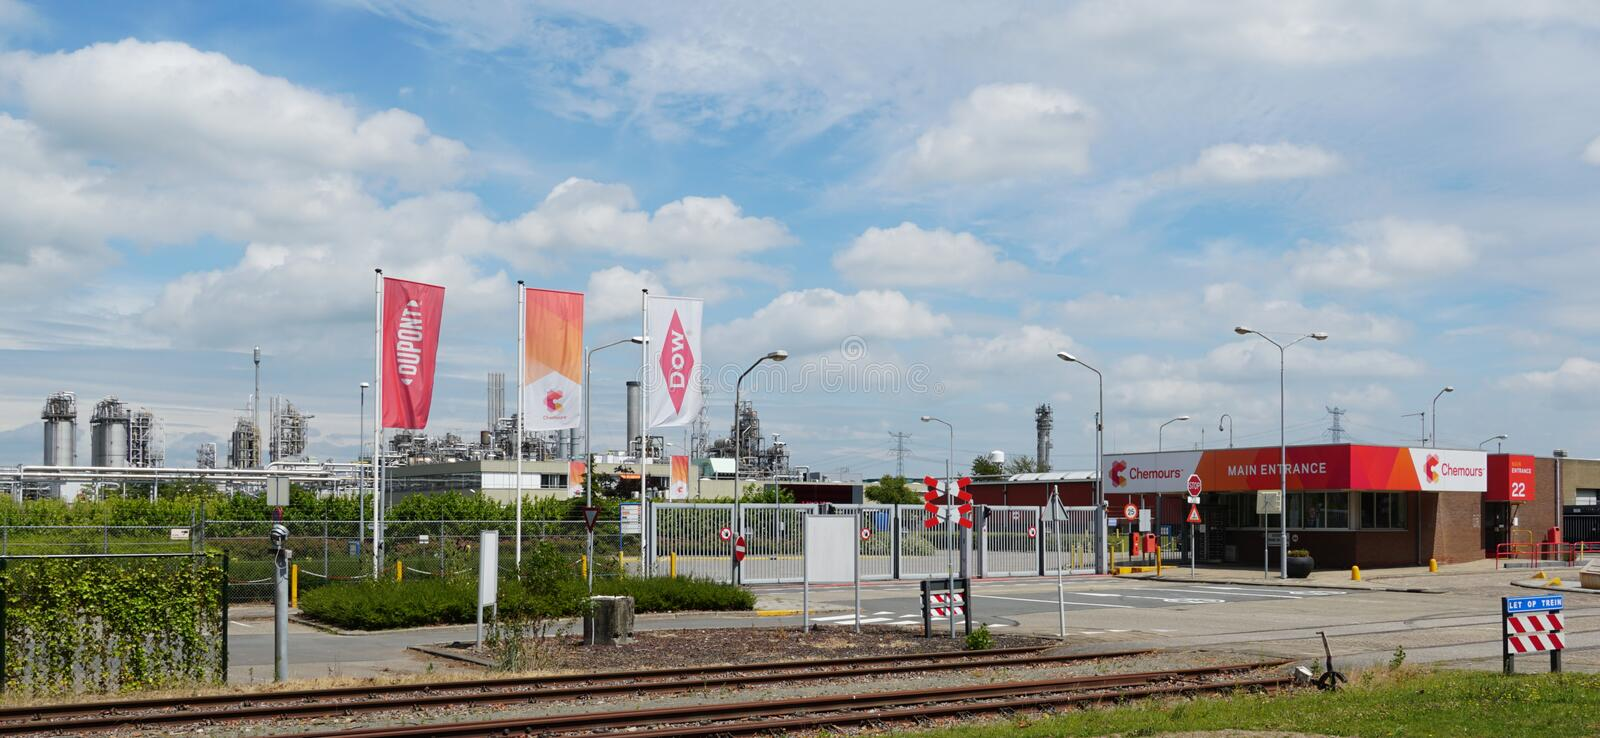 Chemours DuPont chemical company in Dordrecht, the Netherlands. Dordrecht, the Netherlands. July 2019. Entrance to Chemours DuPont chemical factory stock photos